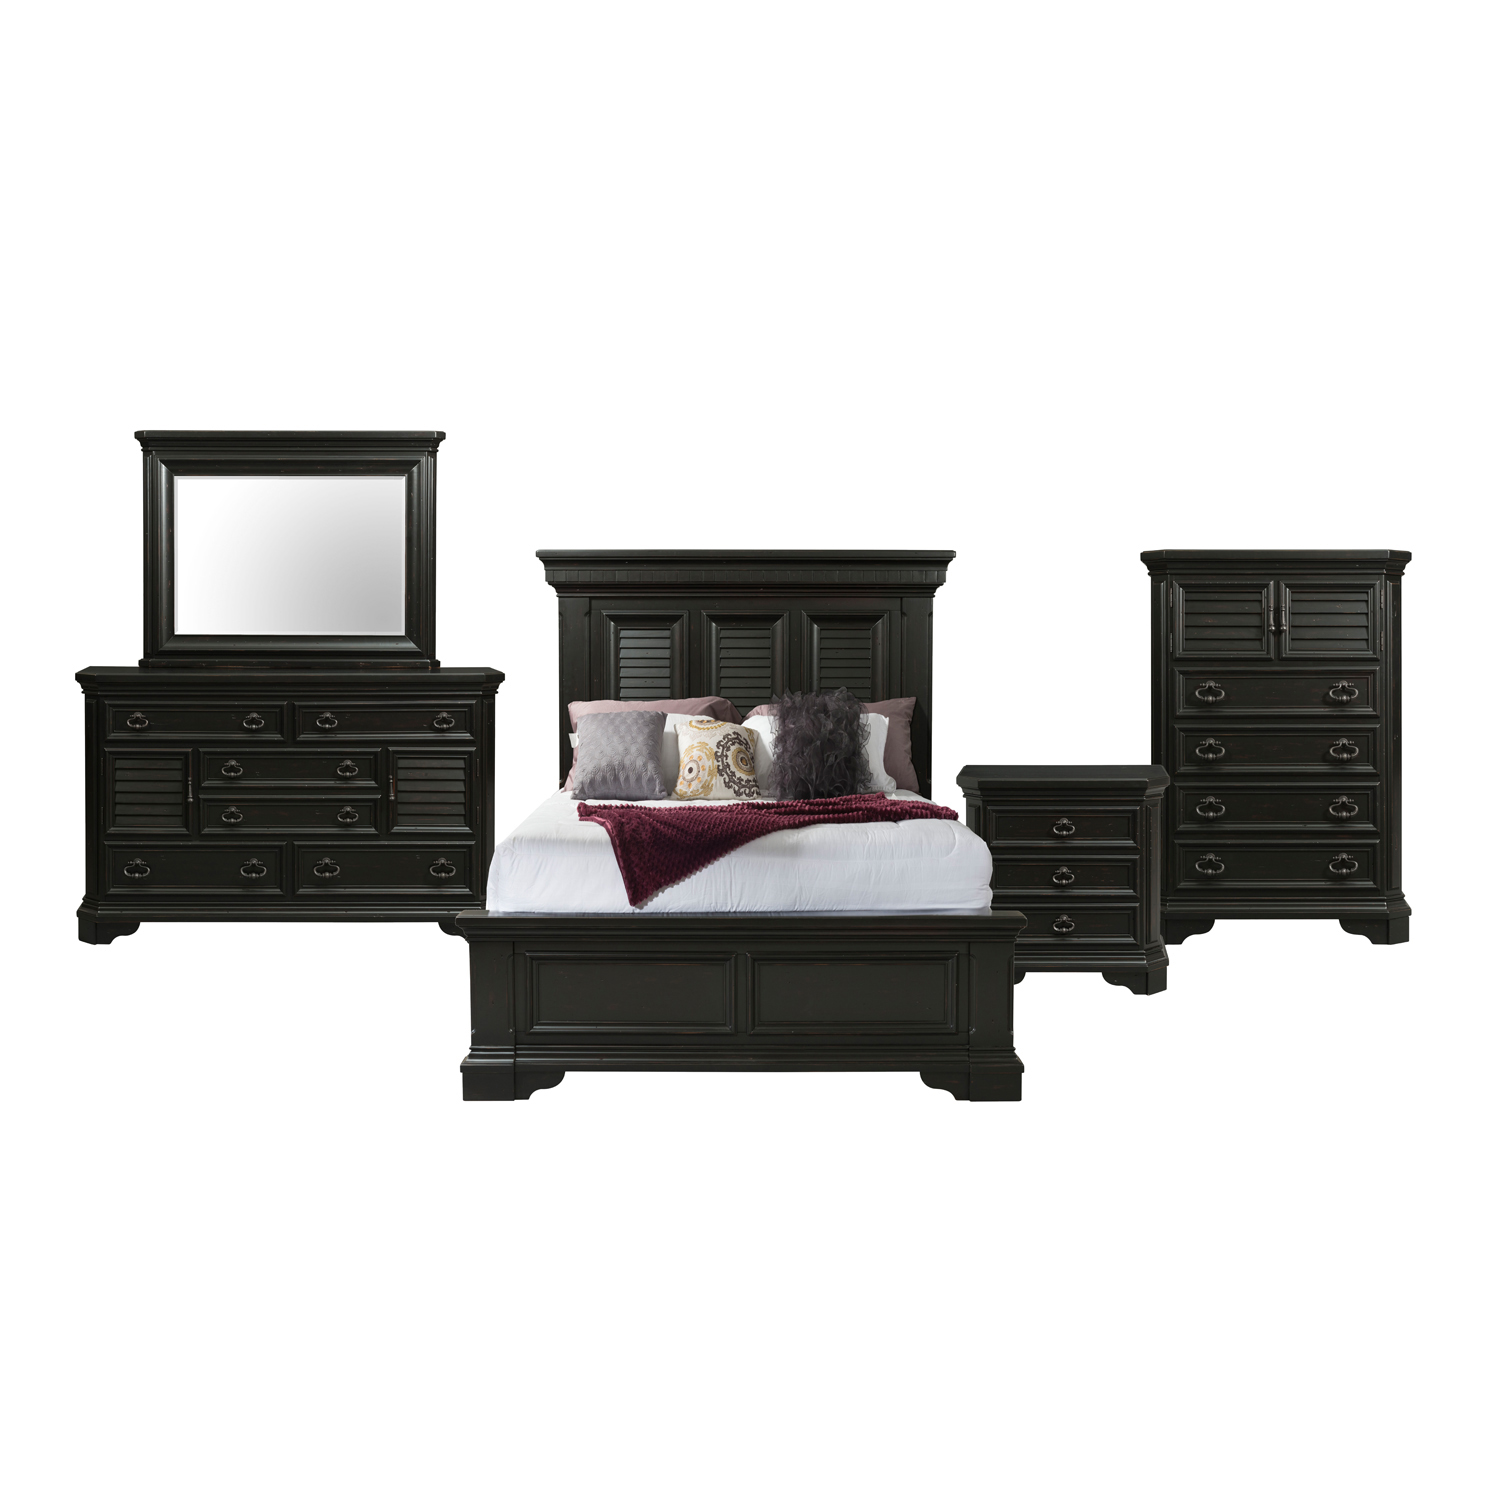 Picket House Furnishings Bradshaw King Storage 5pc Bedroom Set, Espresso by Elements International Group